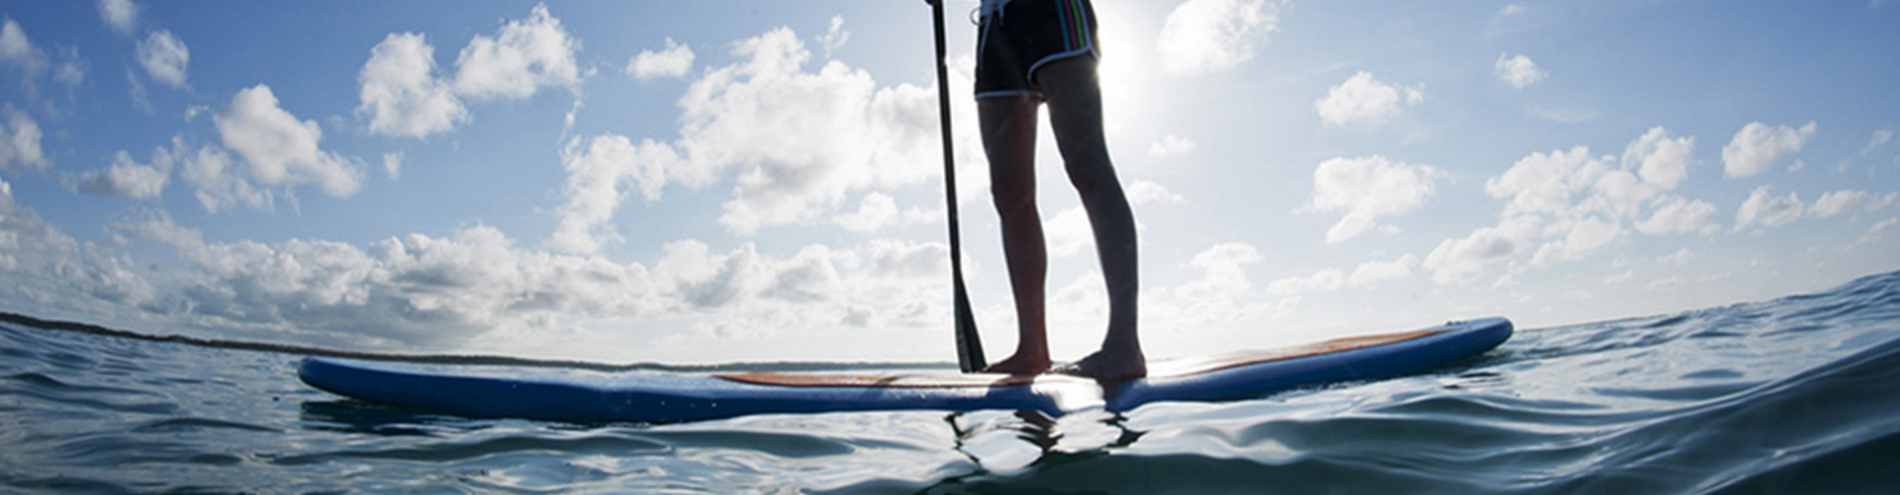 Woka loisirs - Activités Nautiques > Stand Up Paddle